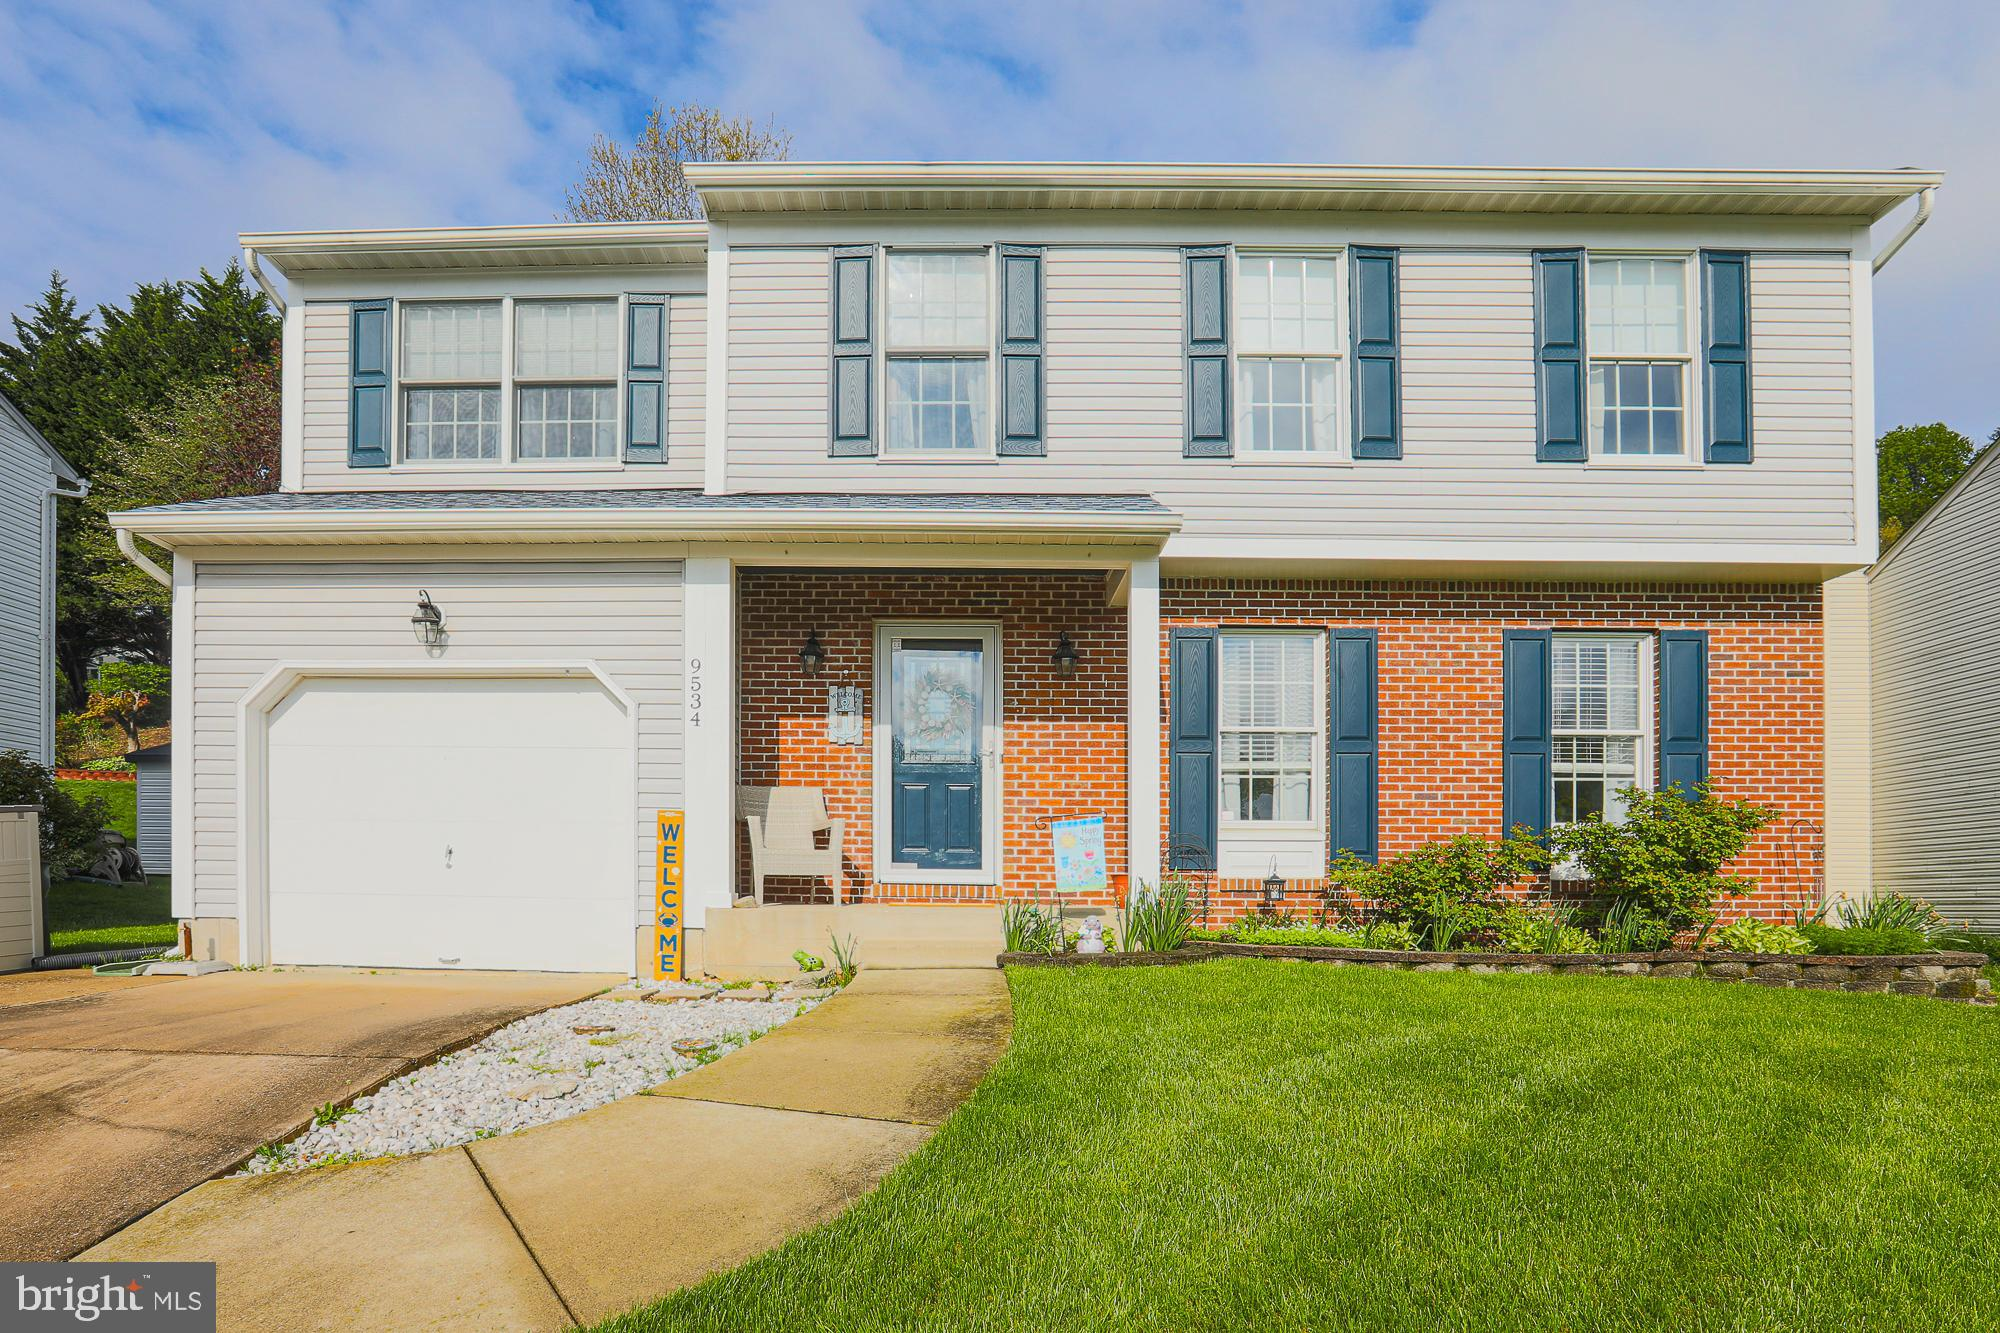 9534 HALLHURST ROAD, Nottingham, Maryland 21236, 4 Bedrooms Bedrooms, ,4 BathroomsBathrooms,Single Family,For Sale,9534 HALLHURST ROAD,MDBC528274